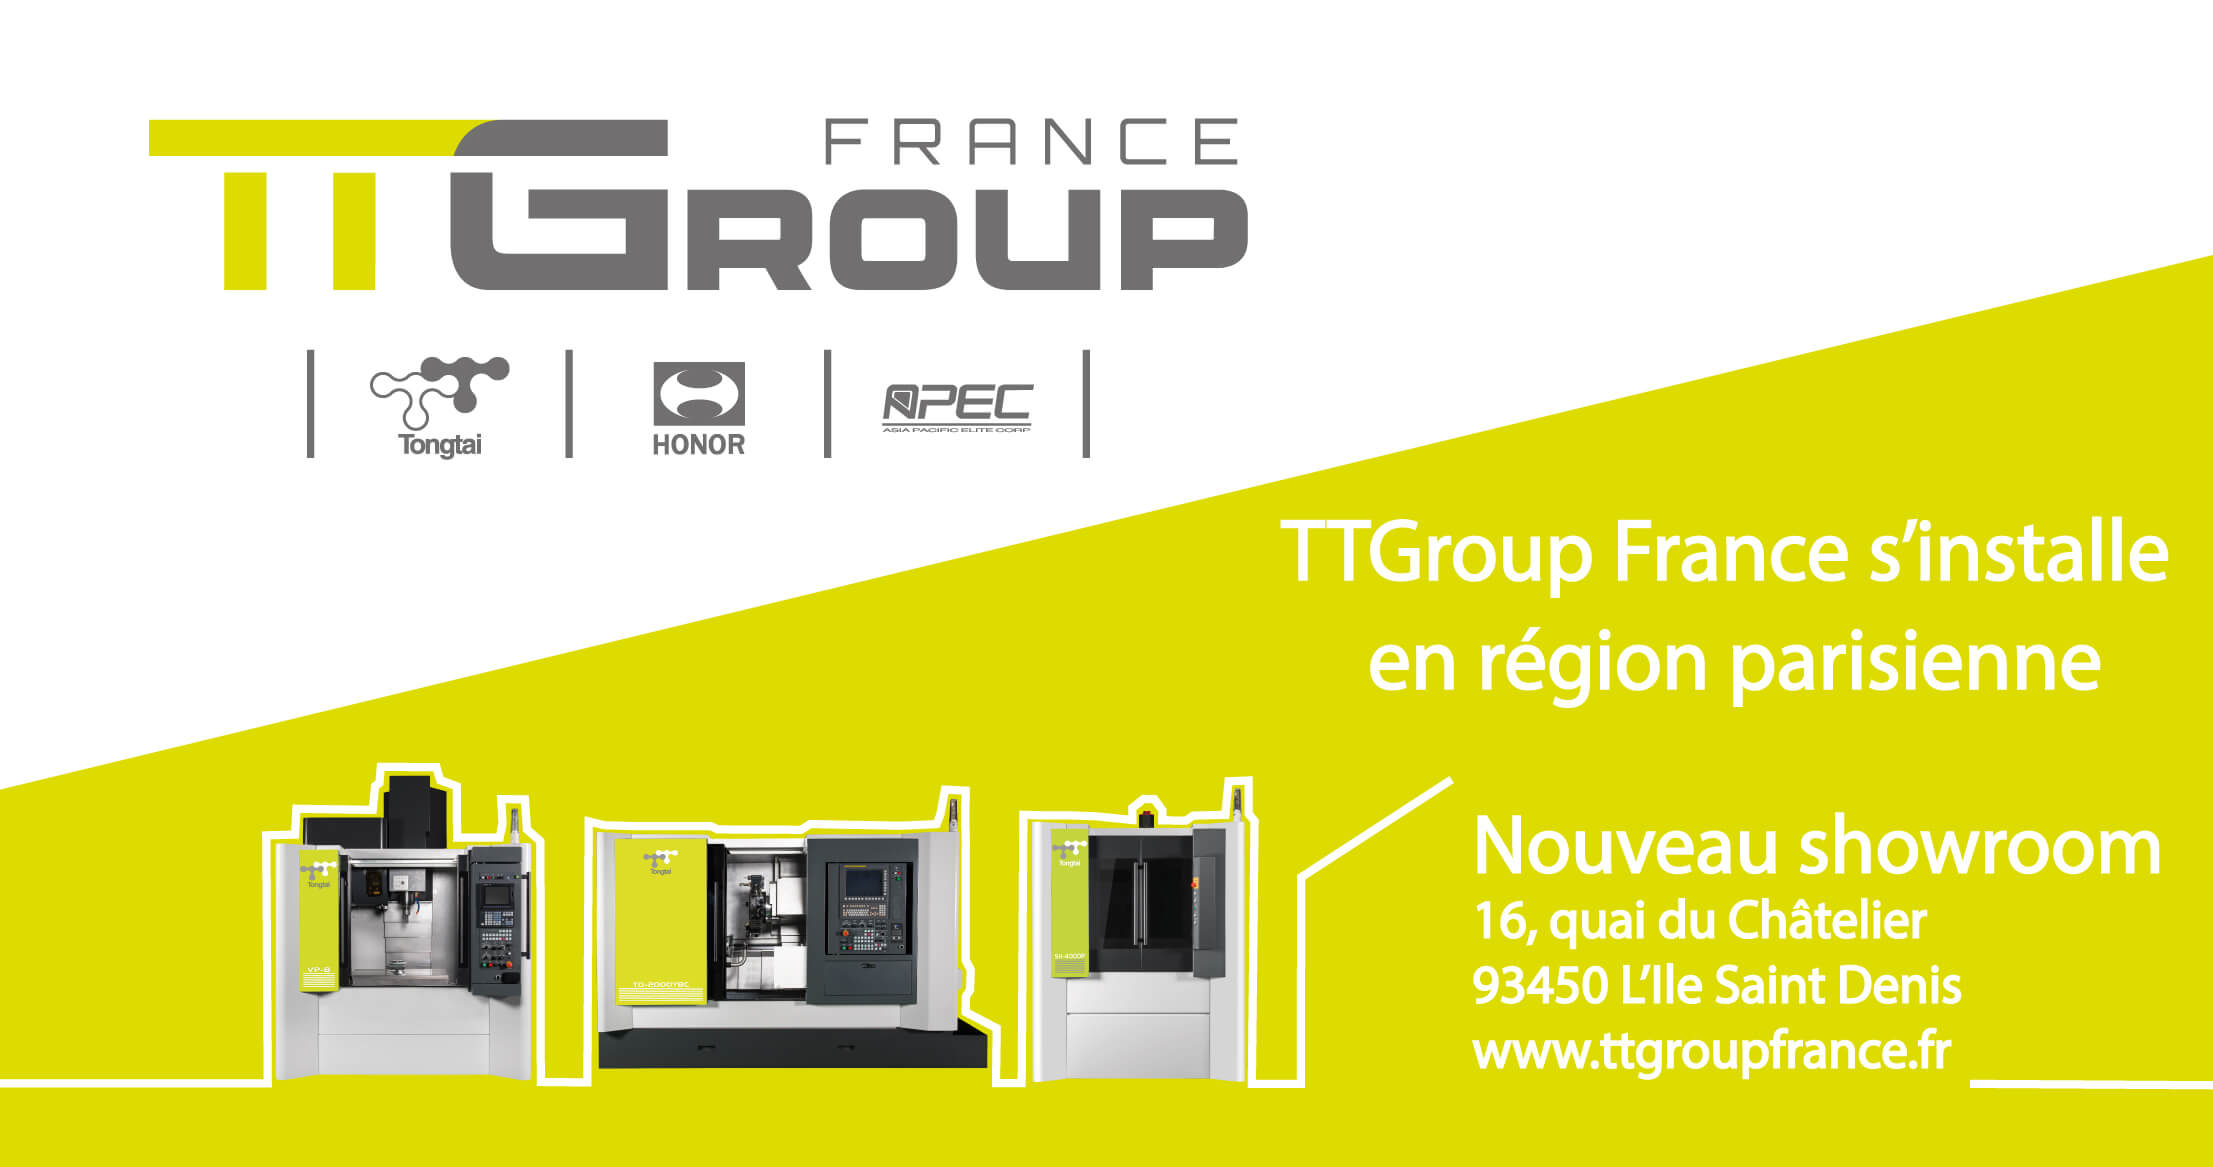 Nouveau Showroom TTGF